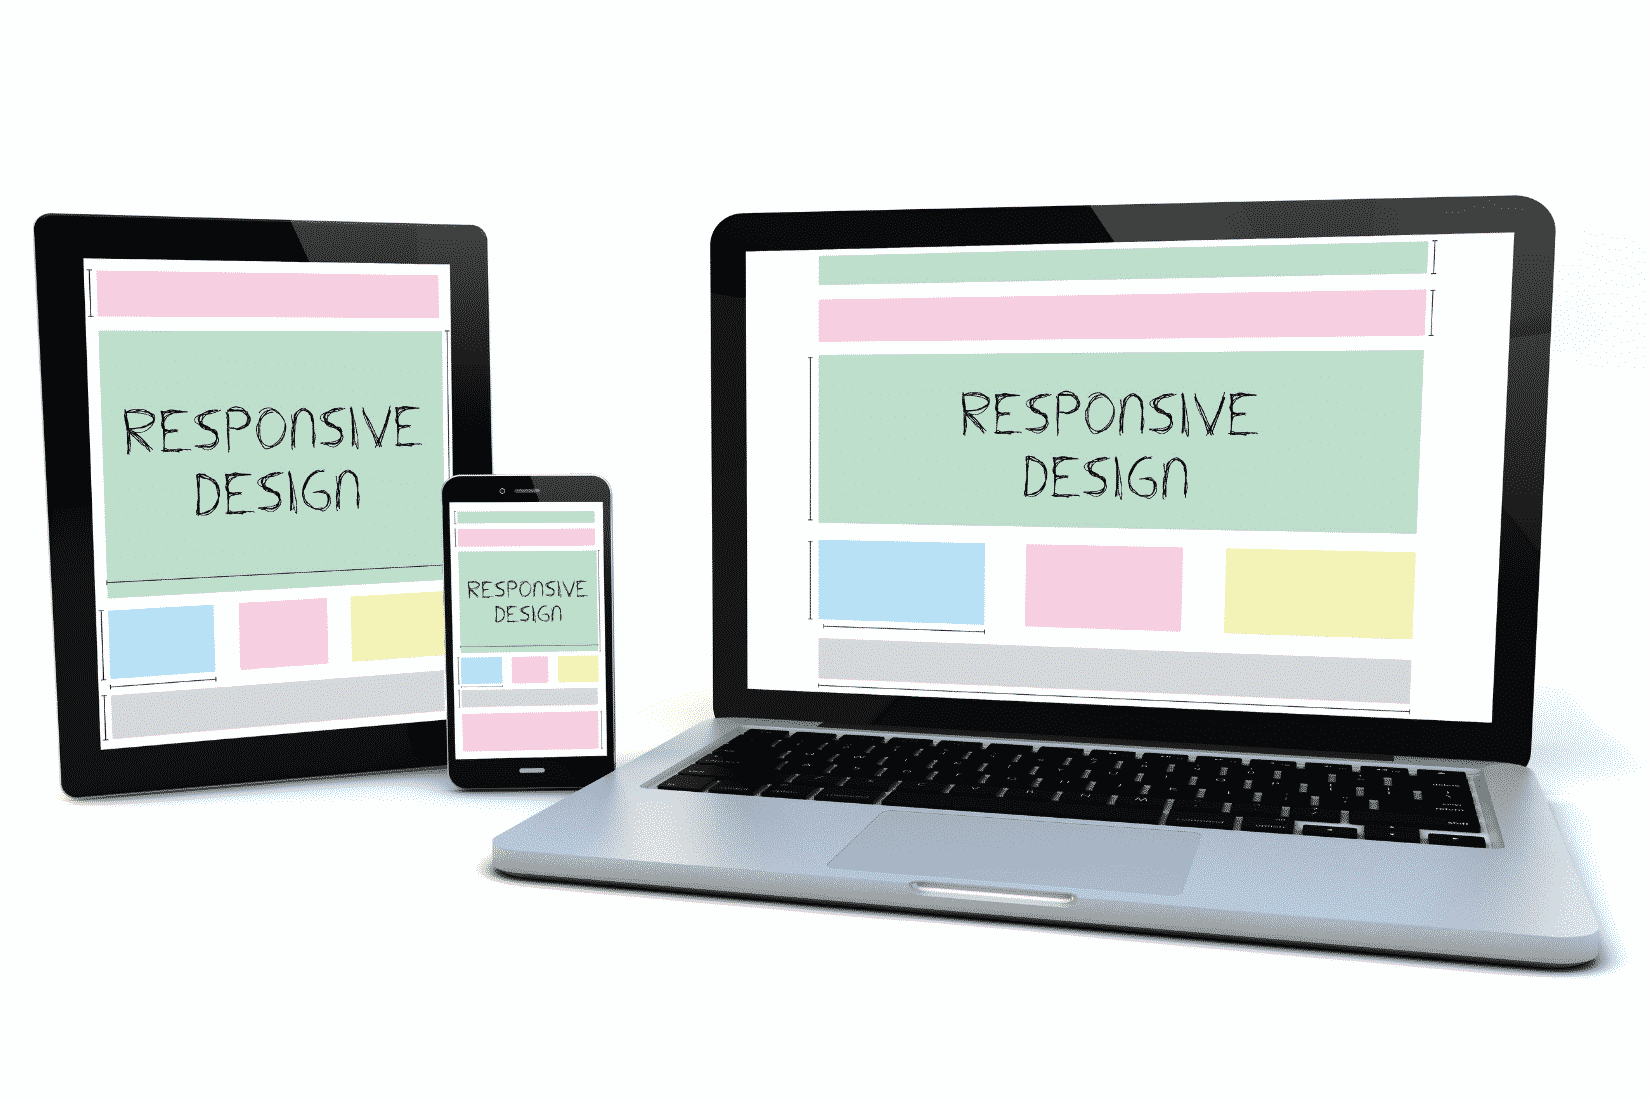 Mobile First - Responsive Design